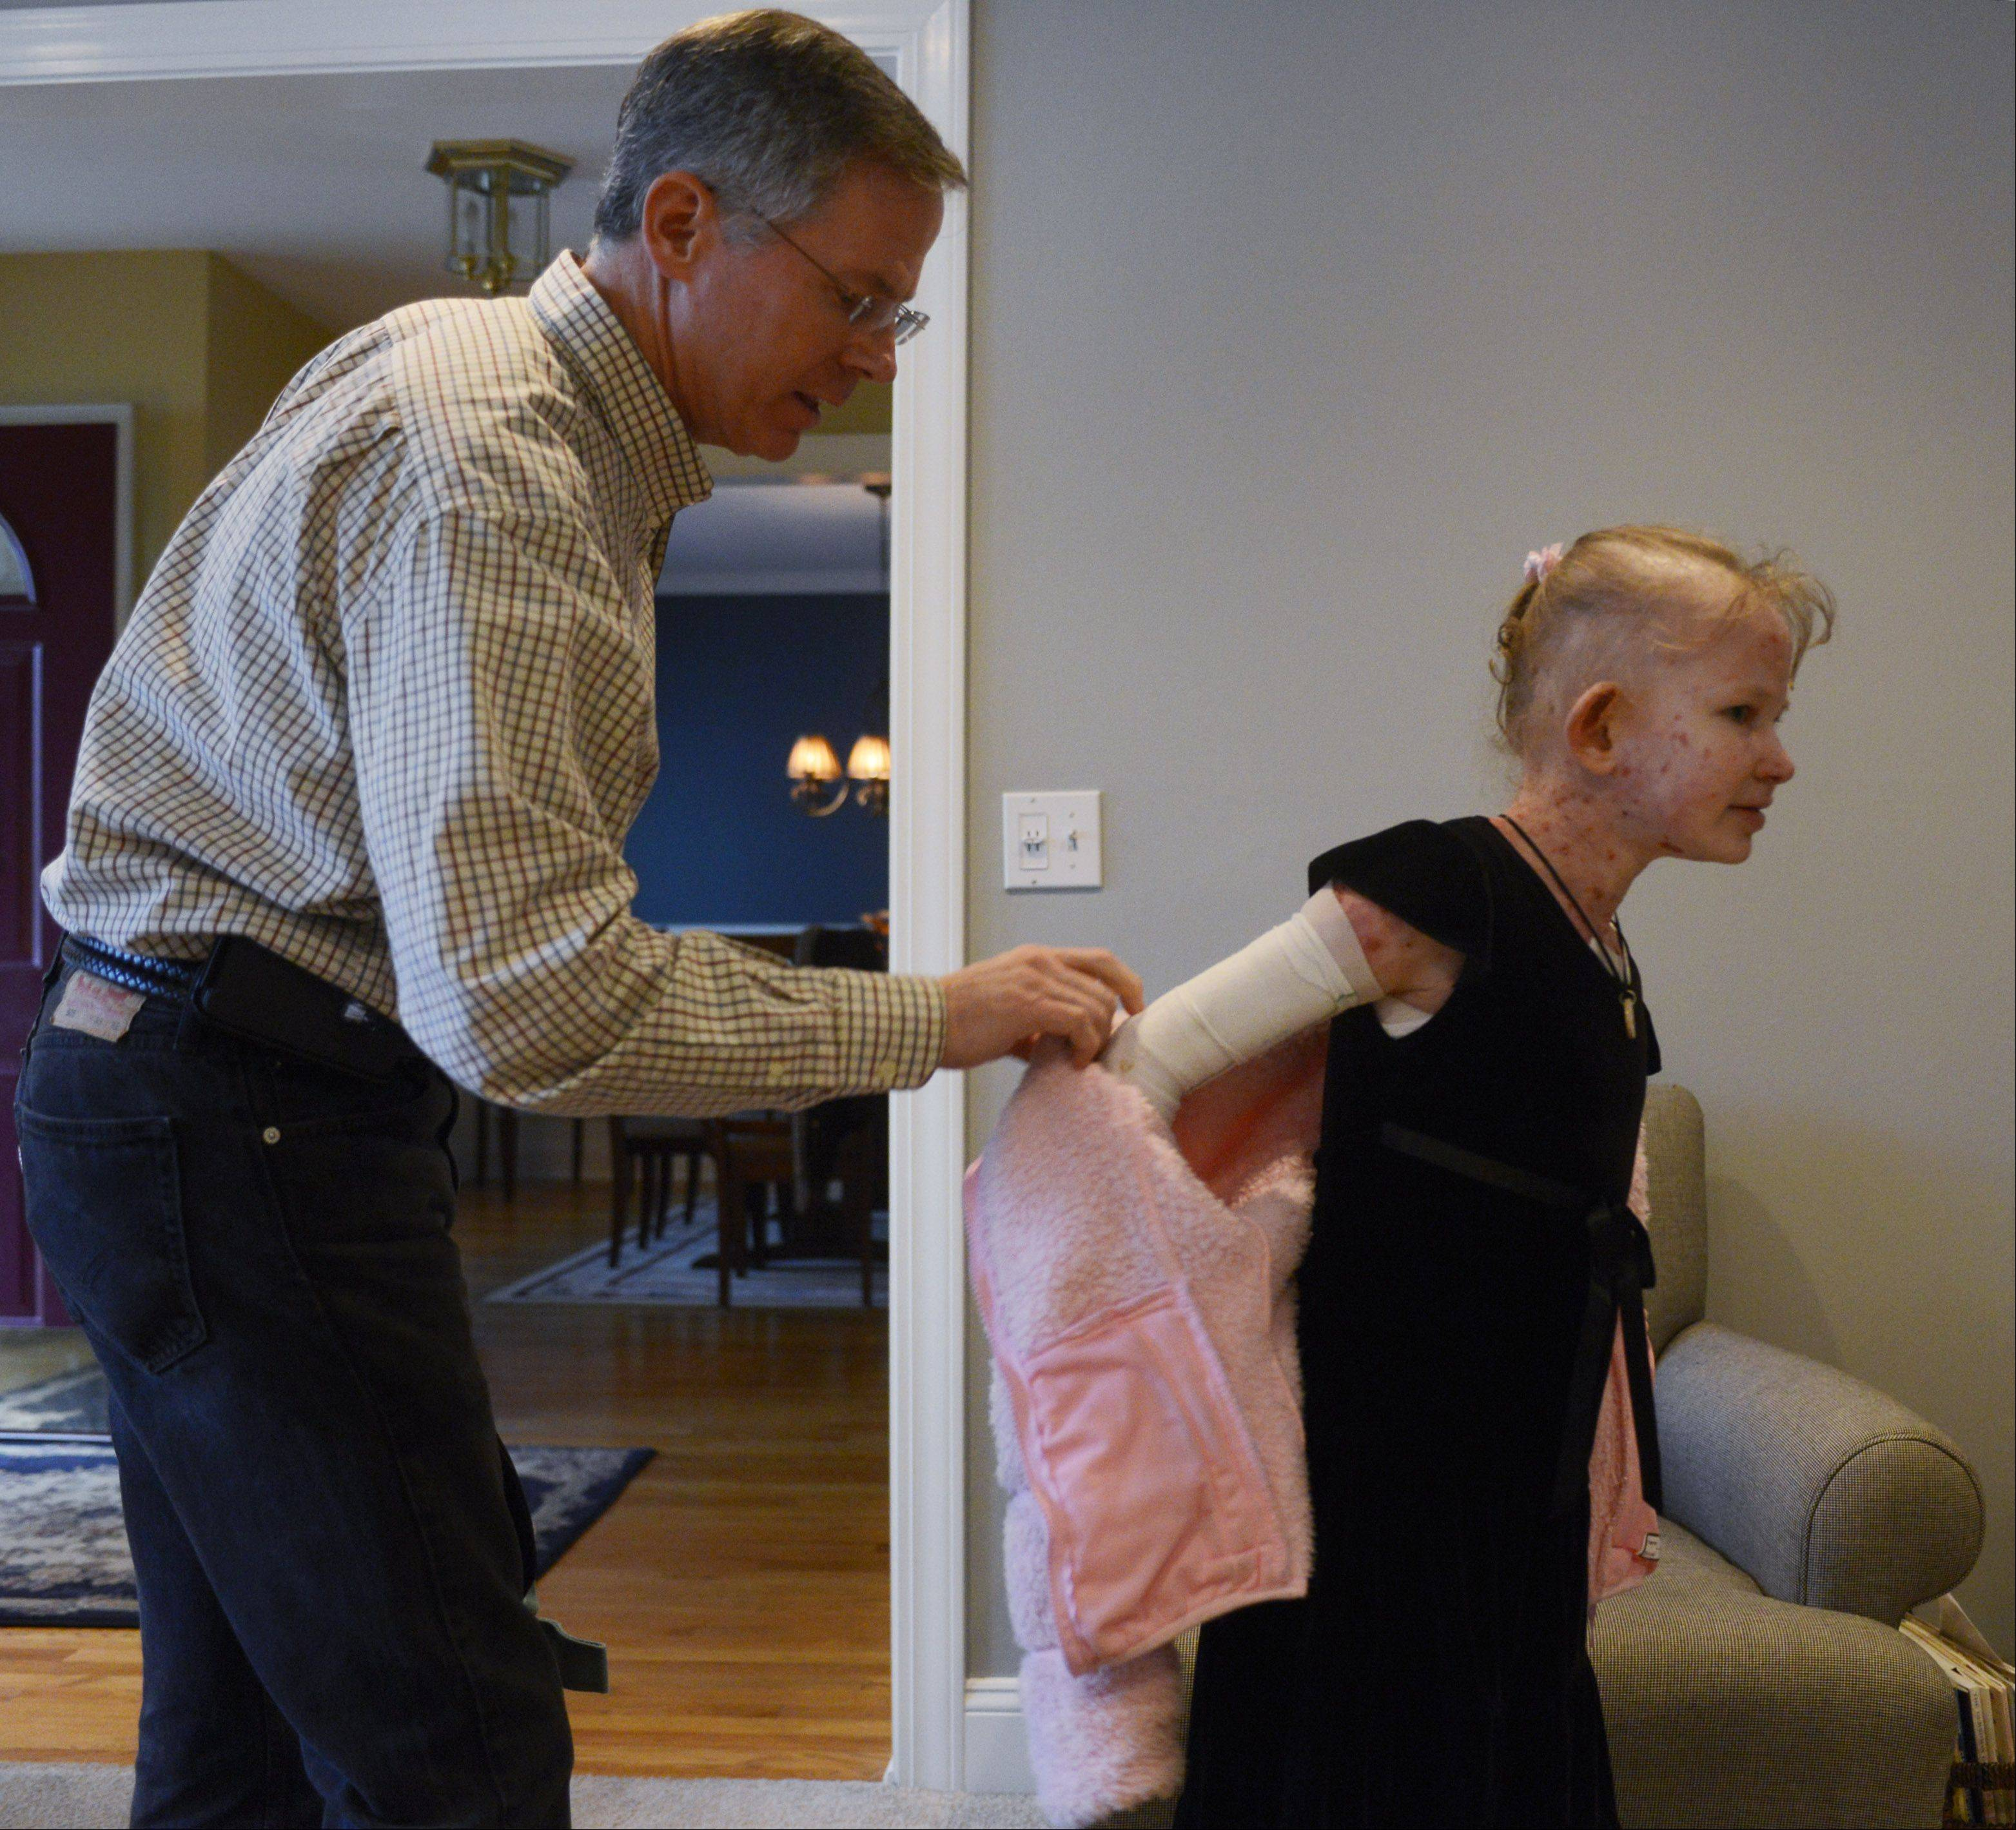 Because of his daughter's rare genetic disorder, Pete Provosts uses the lightest touch to help his daughter remove her coat without blistering her delicate skin.